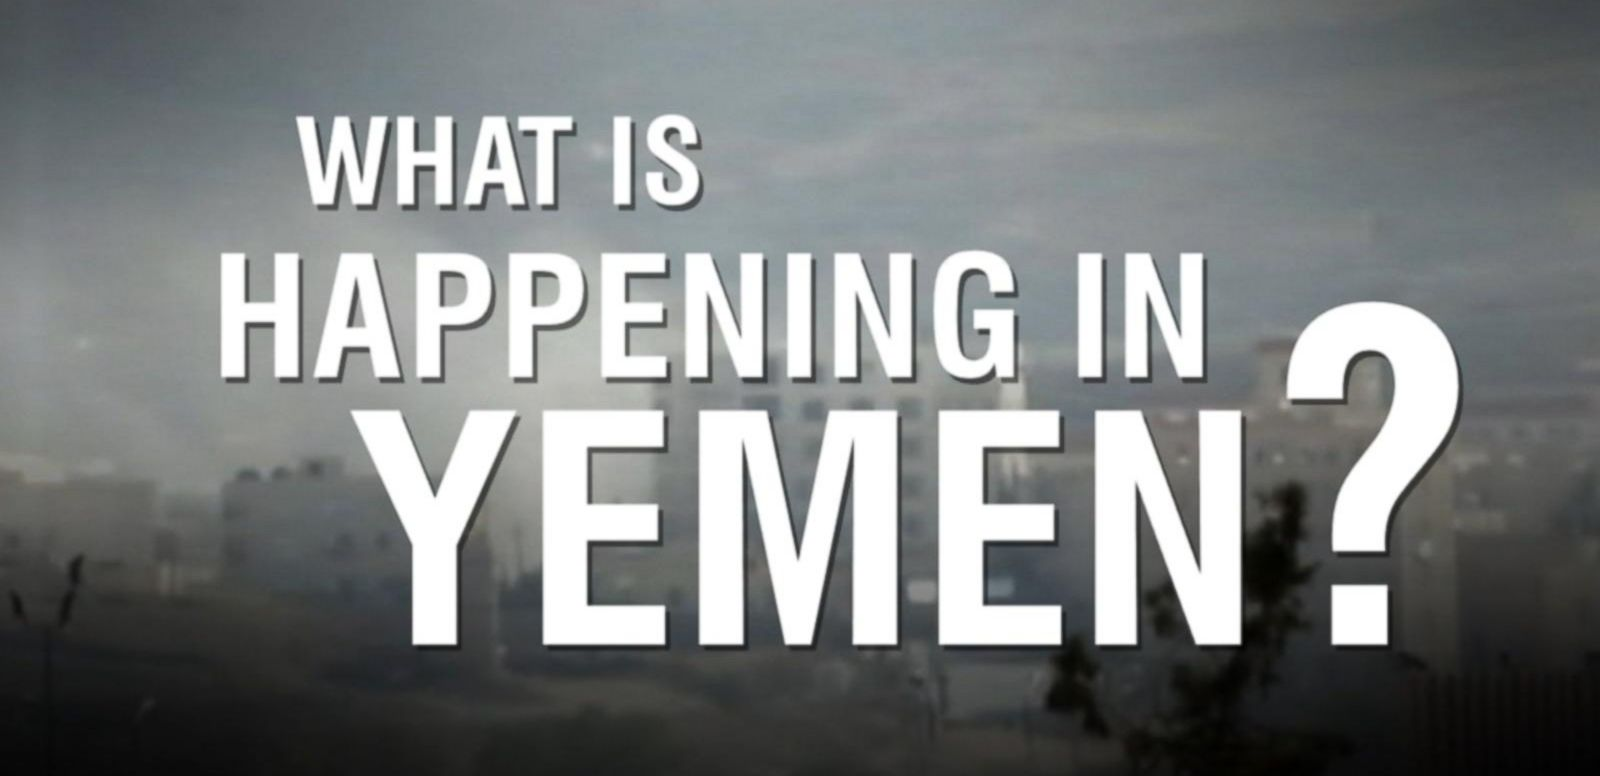 VIDEO: Whats Happening in Yemen?